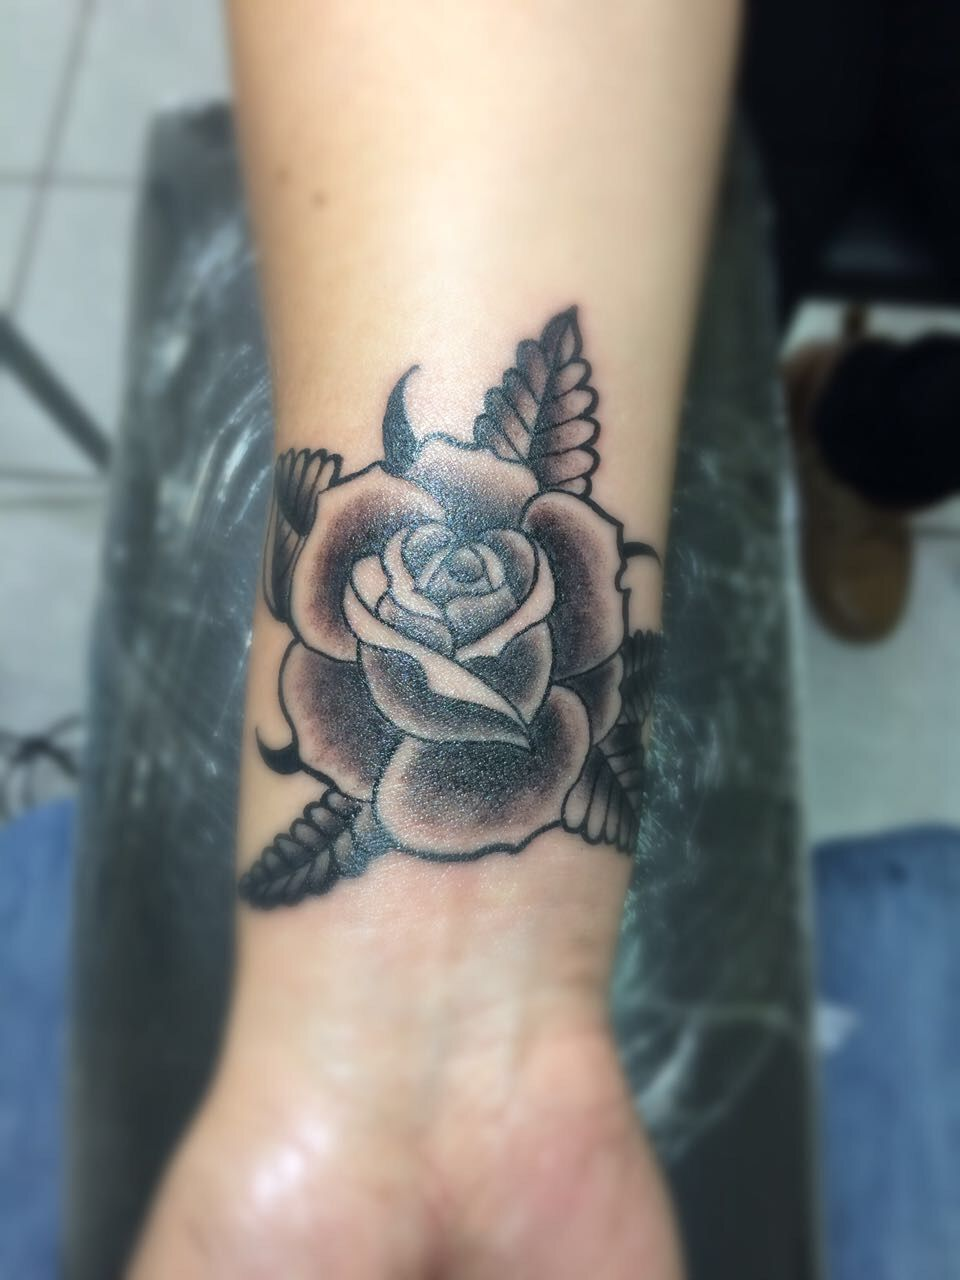 Tatto Rosa Muñeca Lady Tatuajes Tattoos